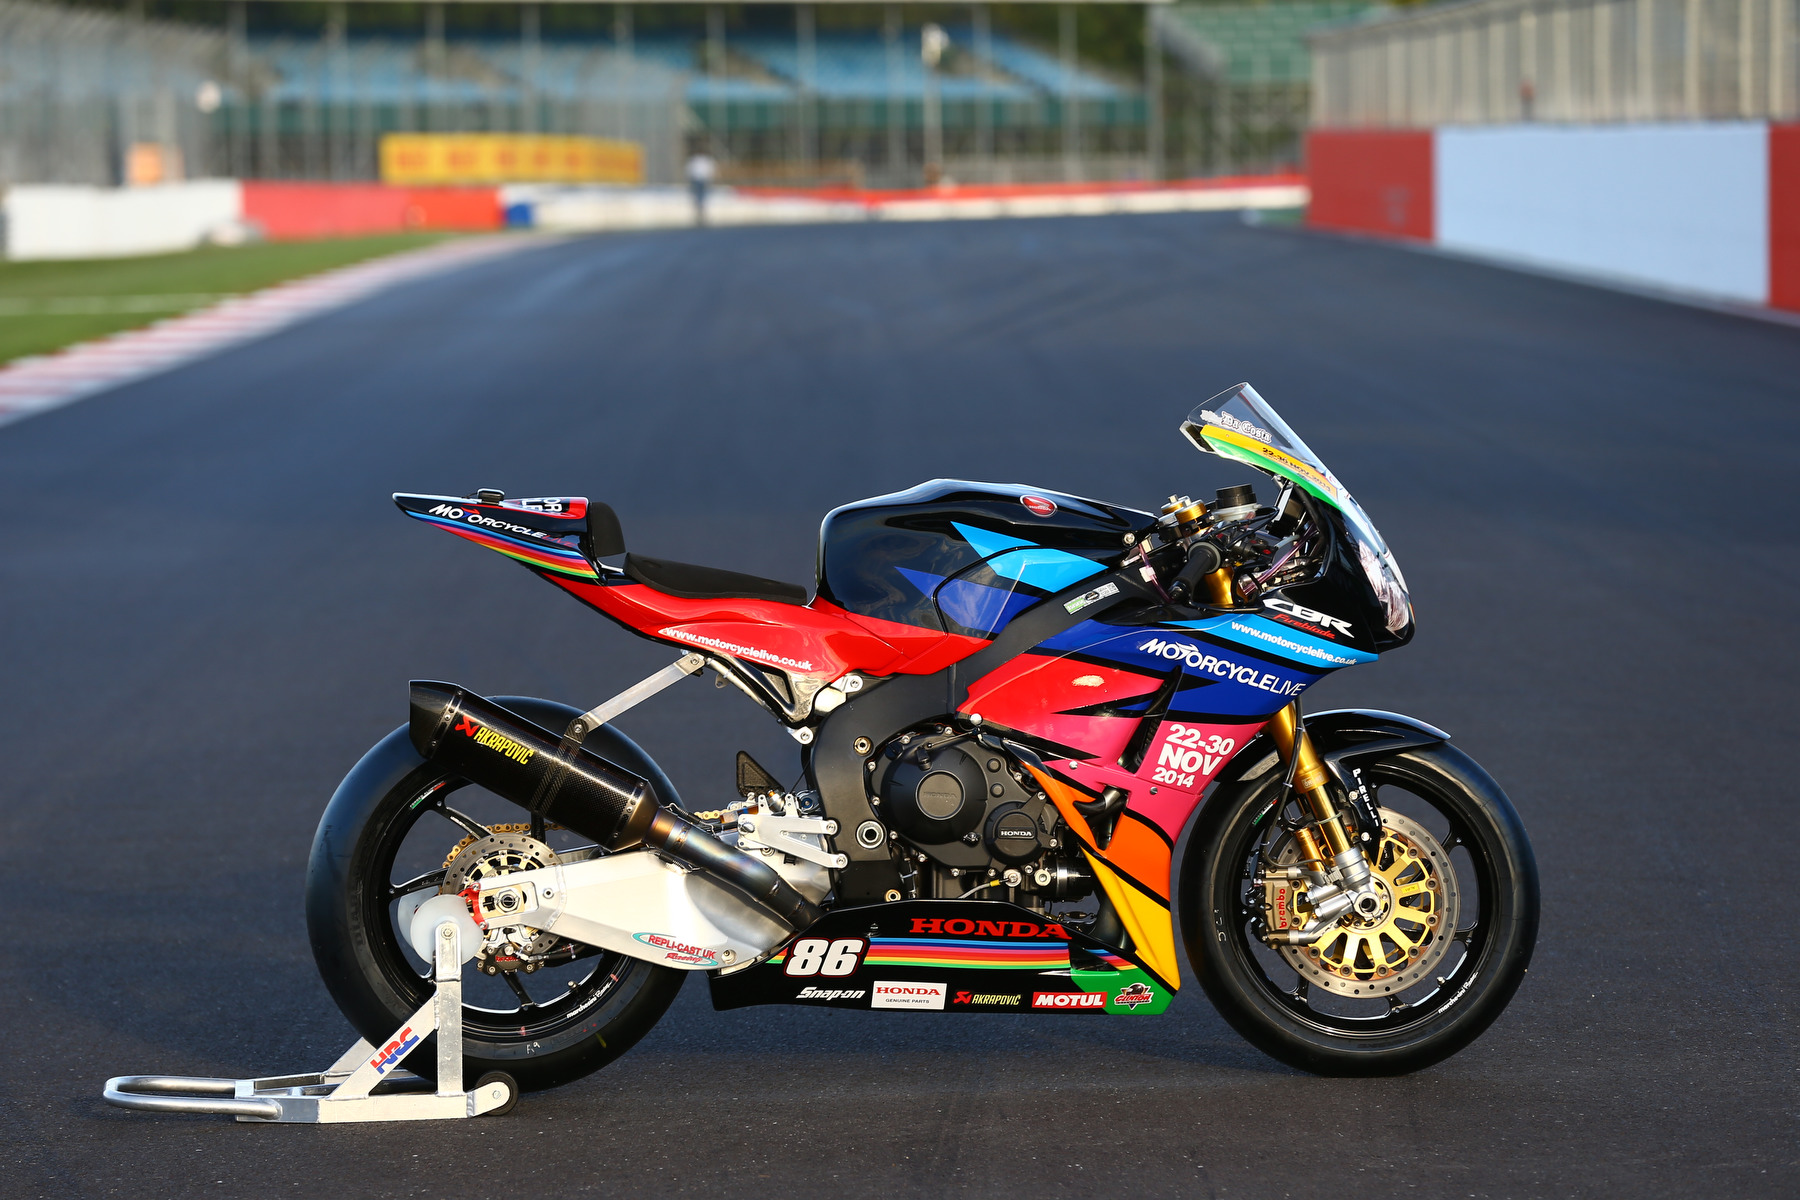 Motorcycle Live livery Fireblade to race at Silverstone